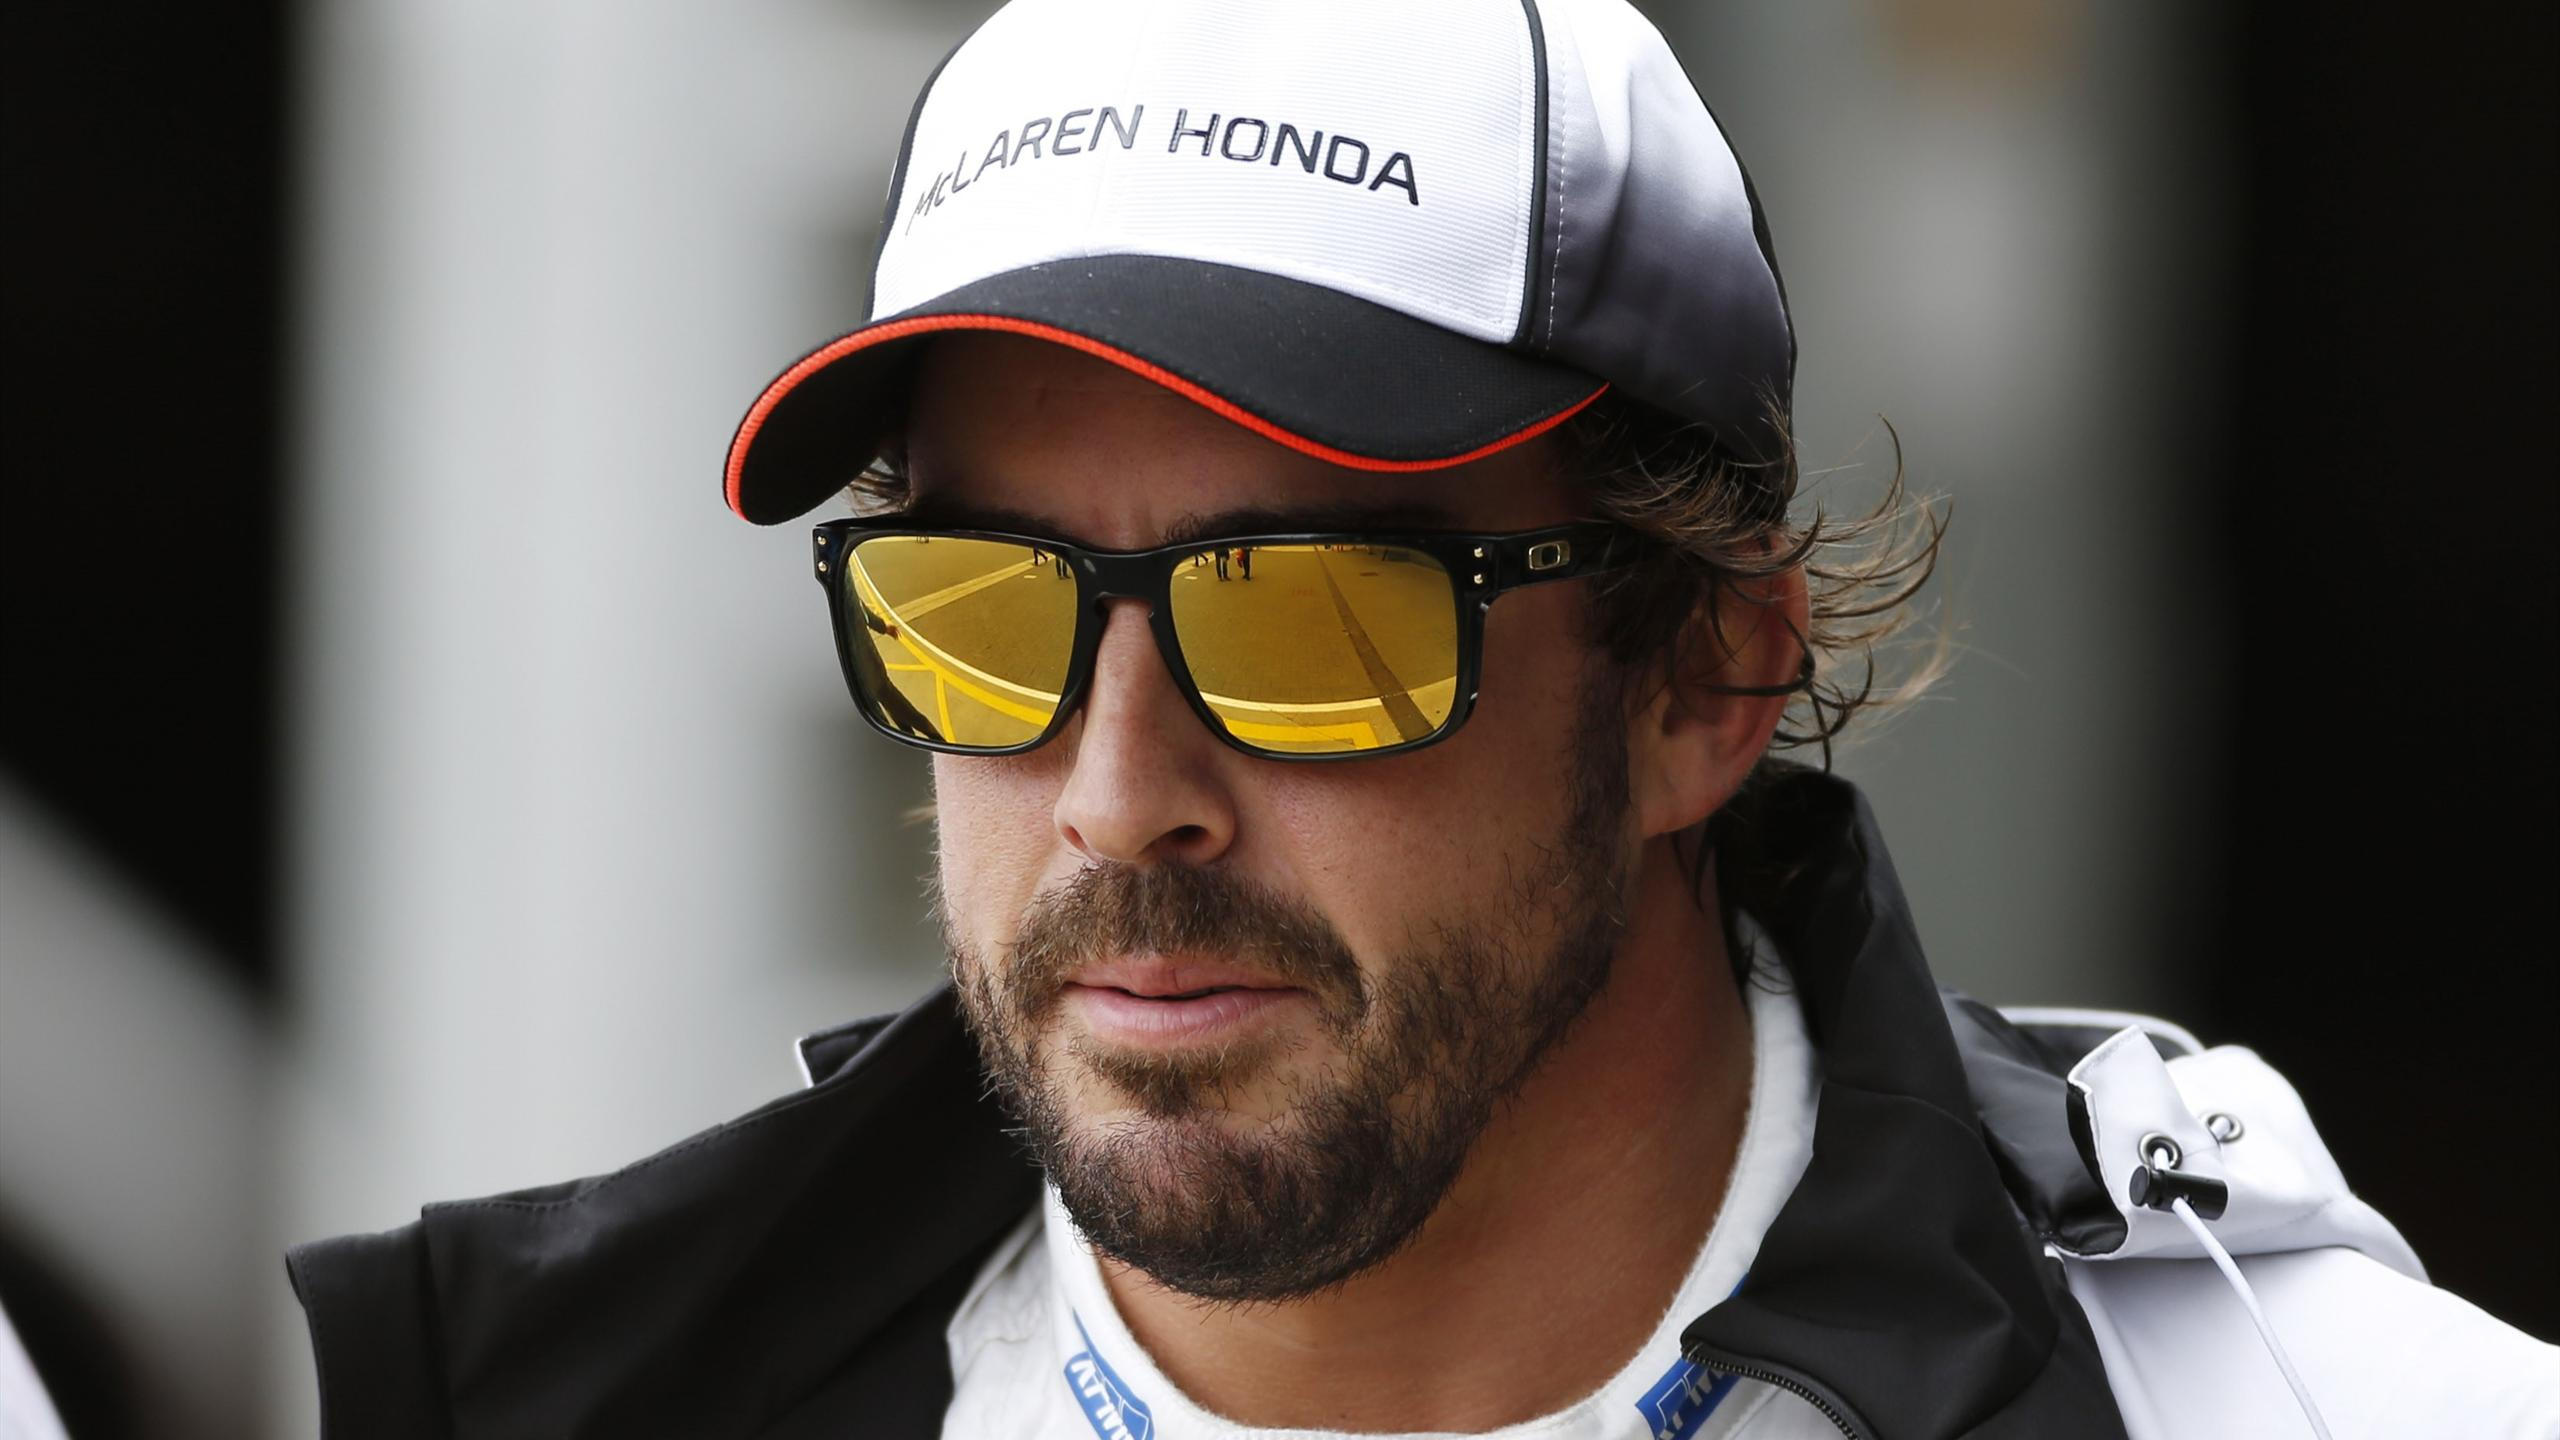 McLaren's Fernando Alonso after qualifying